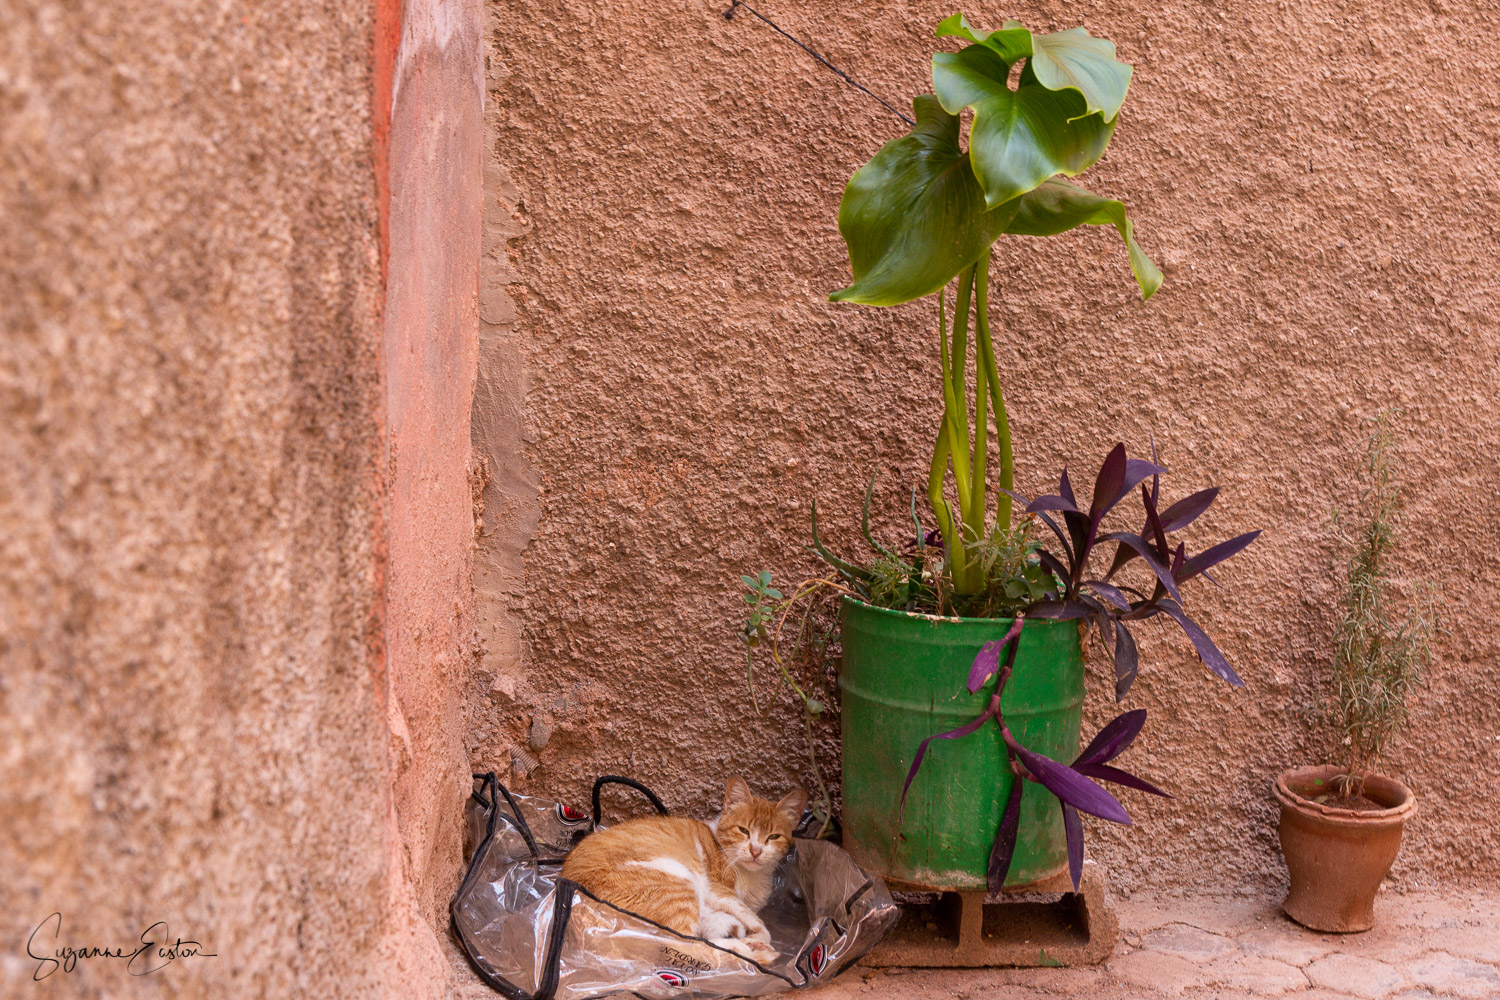 A wild cat living on the streets of Marrakech. Under a plant and in a plastic bag this ginger cat was hiding from the spring heat.